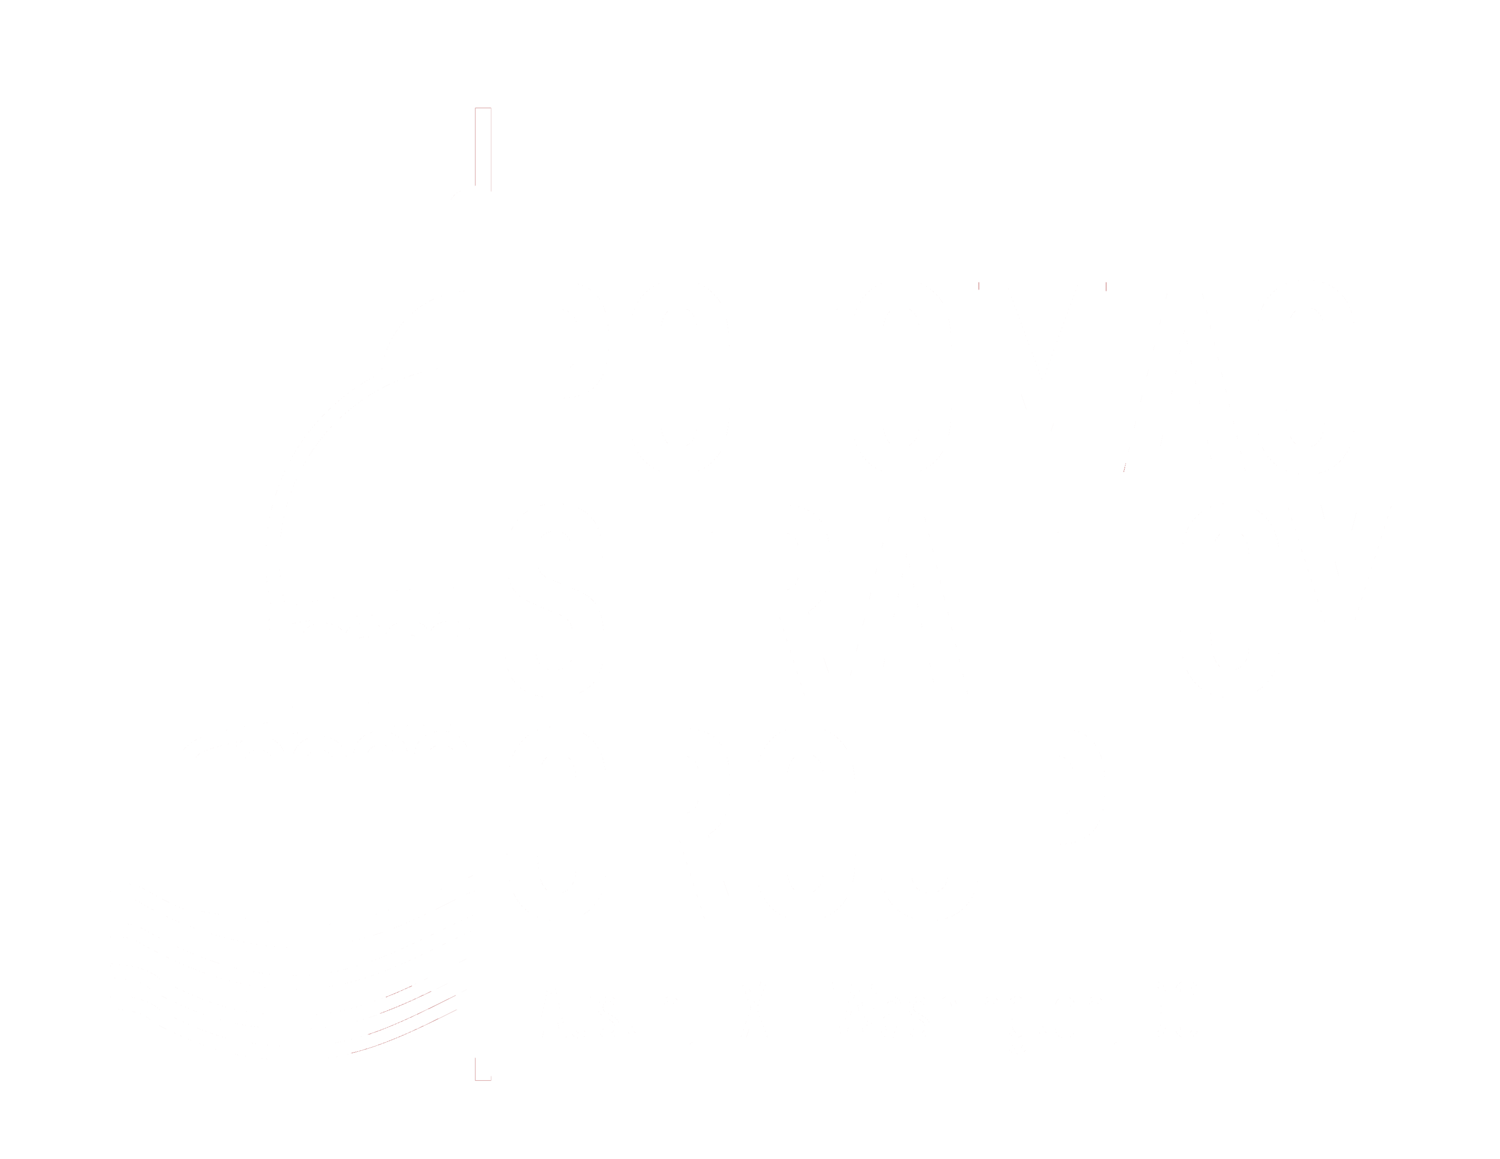 Potomac Strategy Group